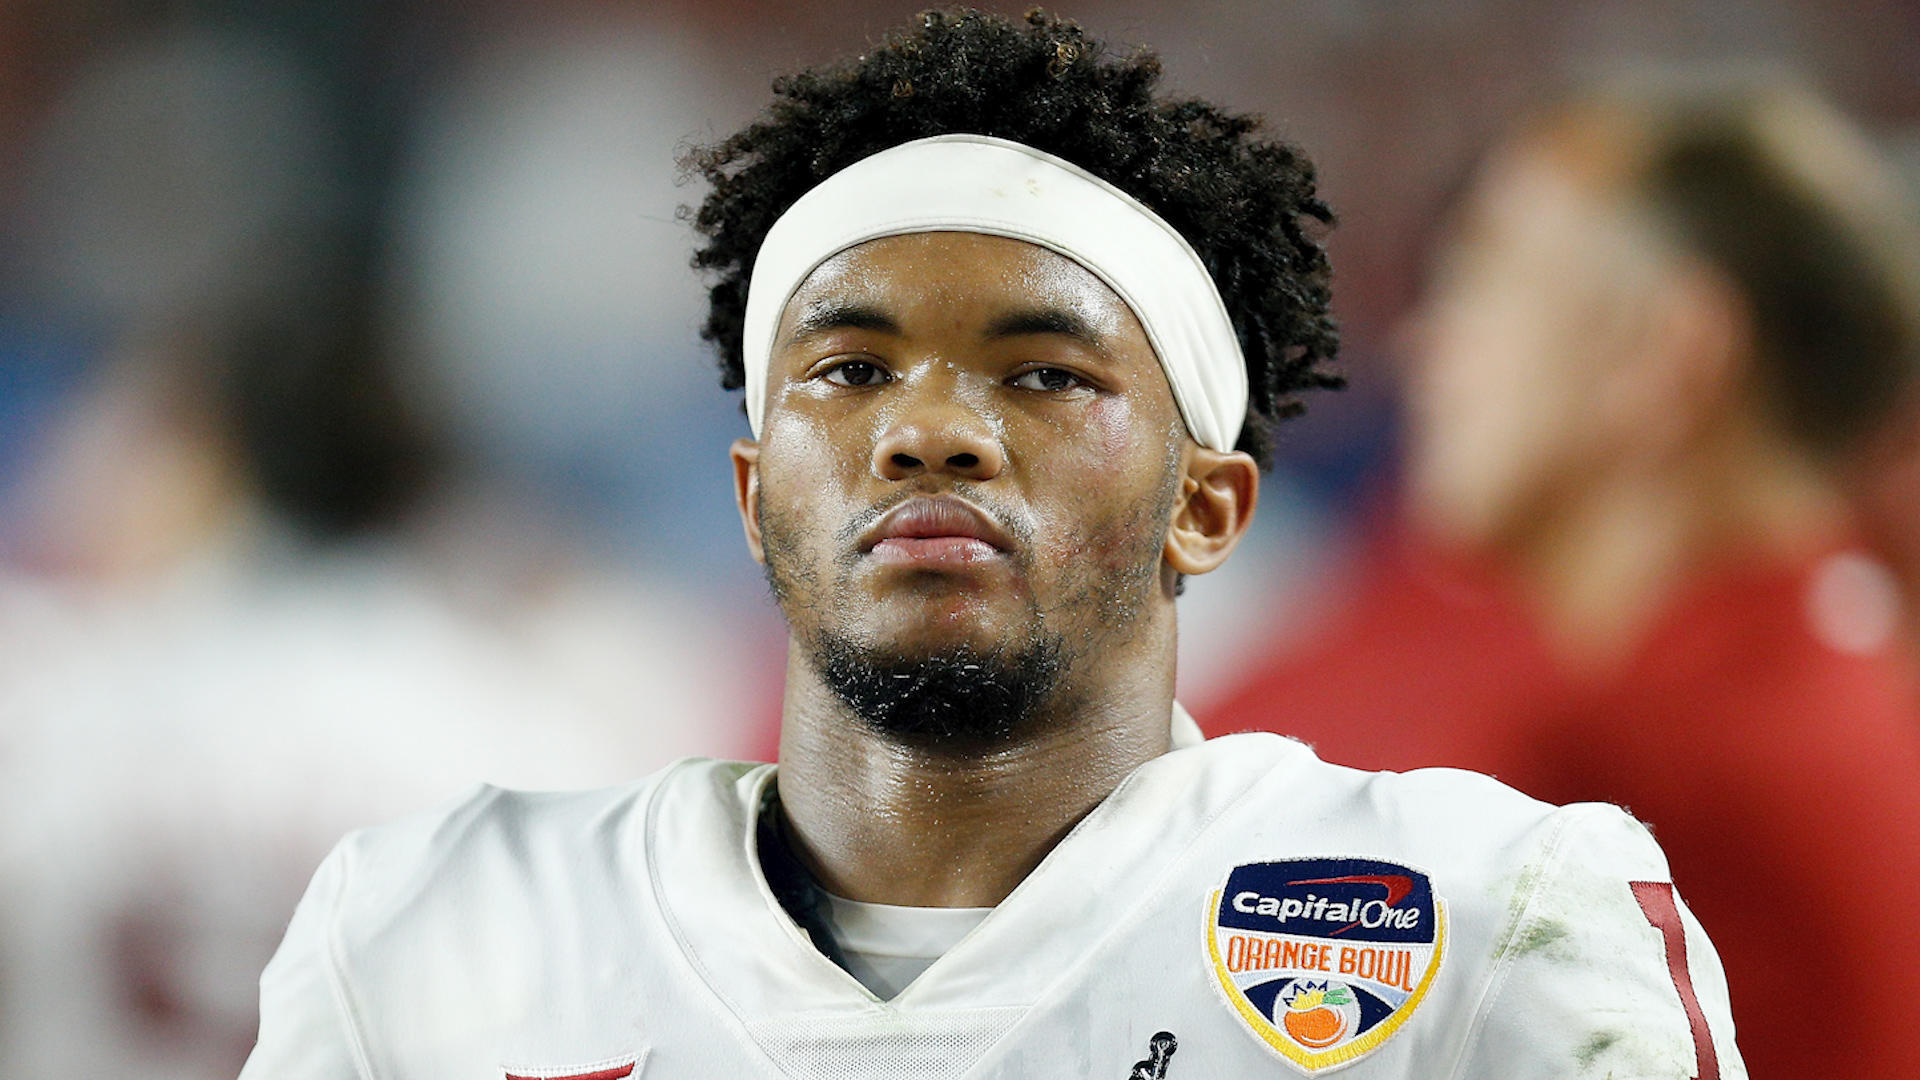 Lincoln Riley says Kyler Murray has a Barry Sanders-like ability to evade big hits